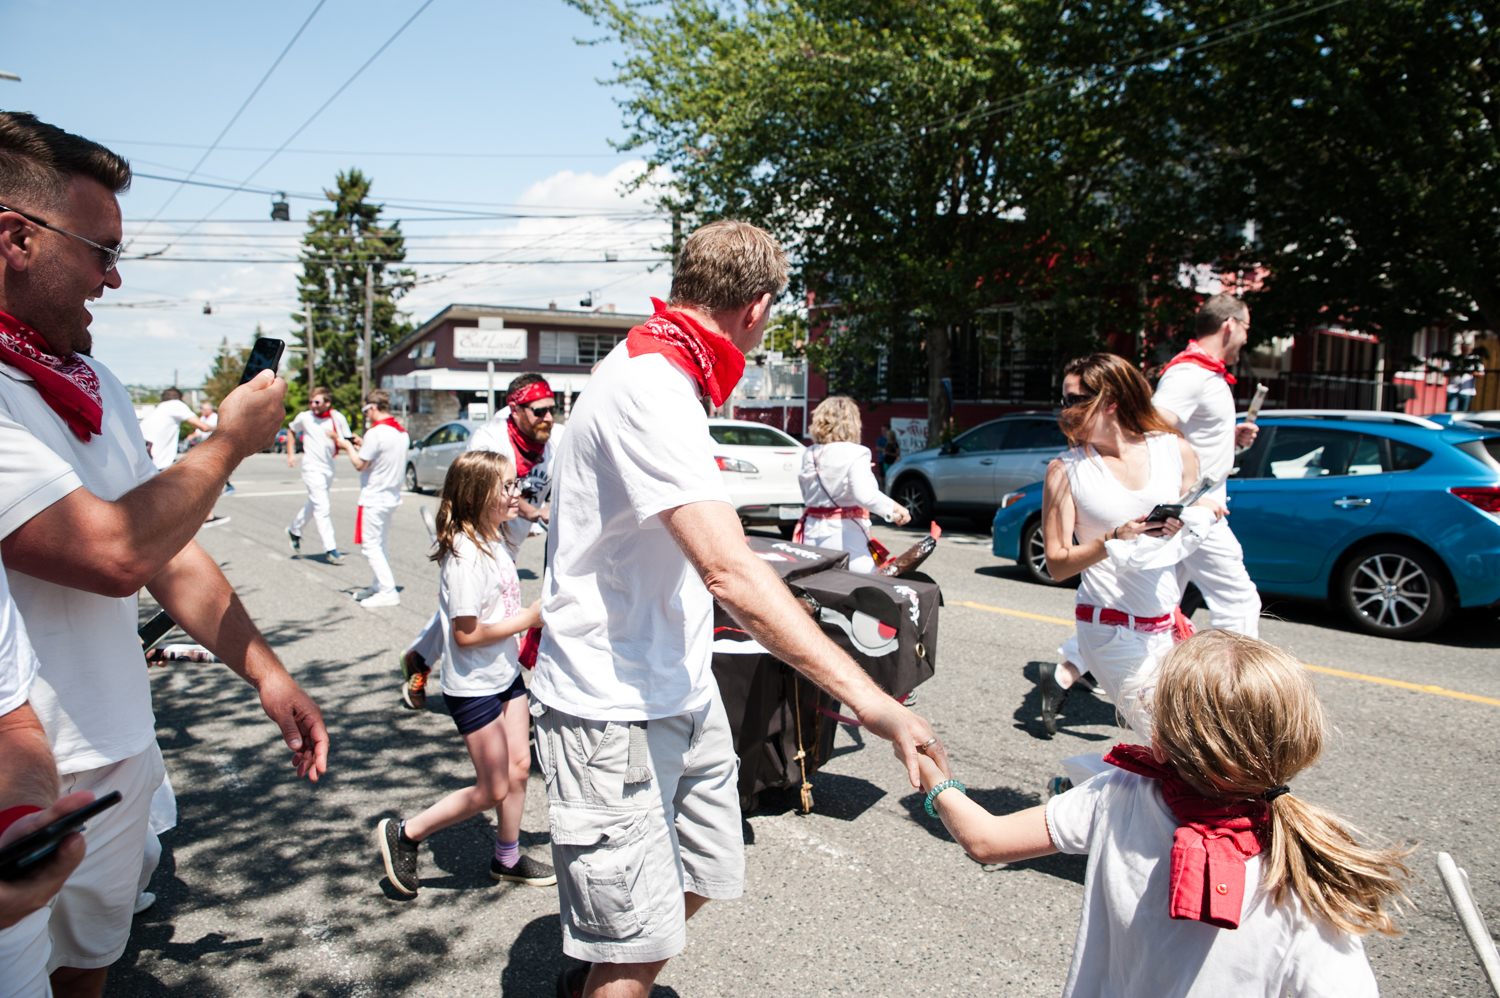 Locals donned white tops, white pants, red scarves and fast shoes to participate in the 10th annual Running of the Bulls along Queen Anne Avenue, hosted by the Comstock Commission. Rally point was Eviva Pizza, where the party started around 11 a.m. on Saturday, July 13.{ } The quick, 15 minute run took place around 1 p.m. - and it's safe to say there were MUCH fewer injuries than in Pamplona. (Image: Elizabeth Crook / Seattle Refined)